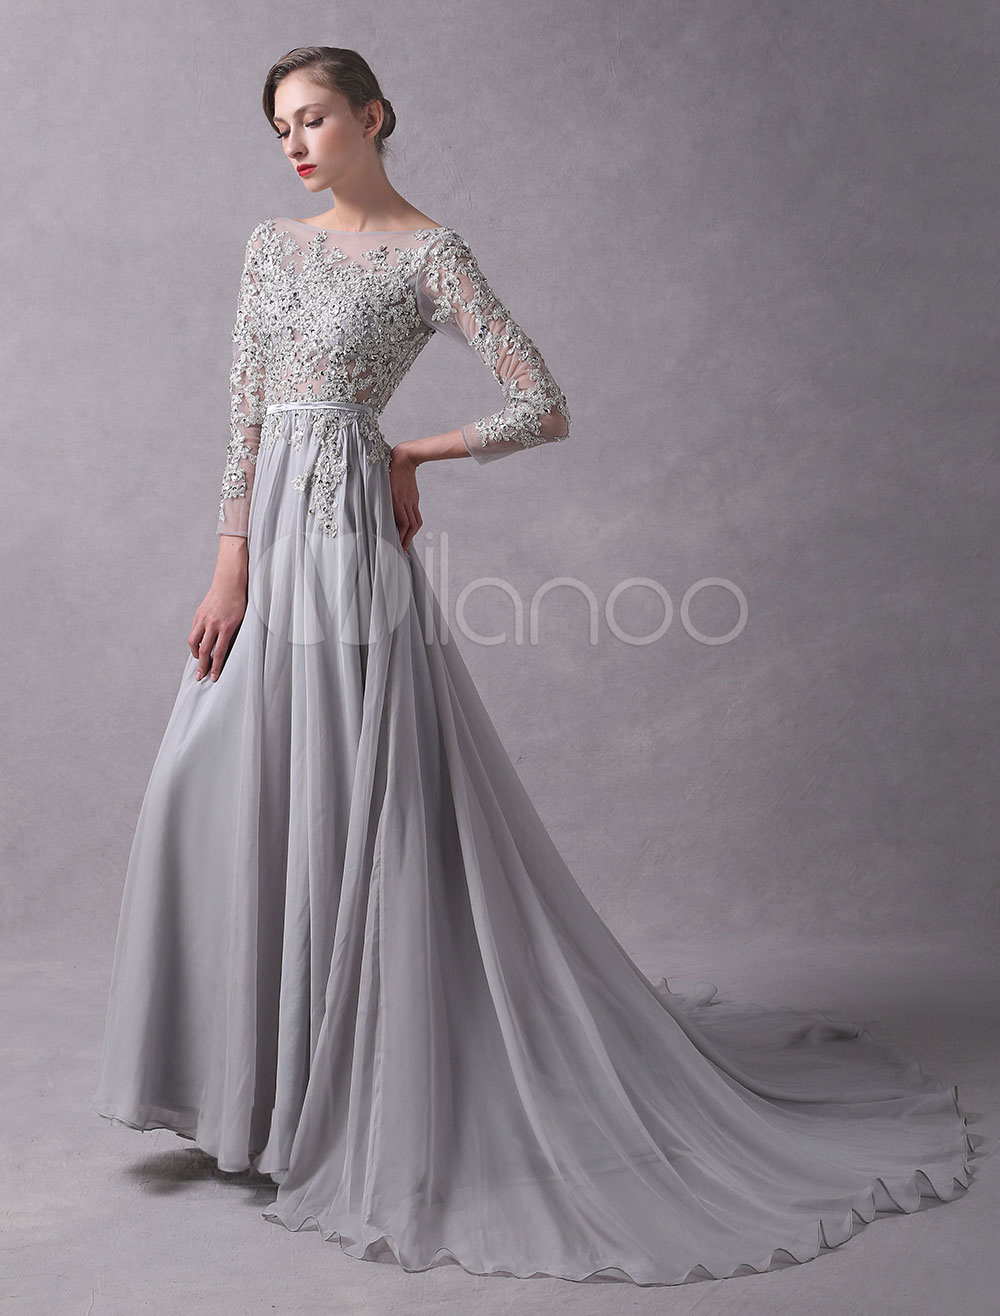 39d5d750bd ... Long Sleeve Lace Applique Beaded Illusion Sash Formal Dresses With  Train. 12. 45%OFF. Color Light Grey